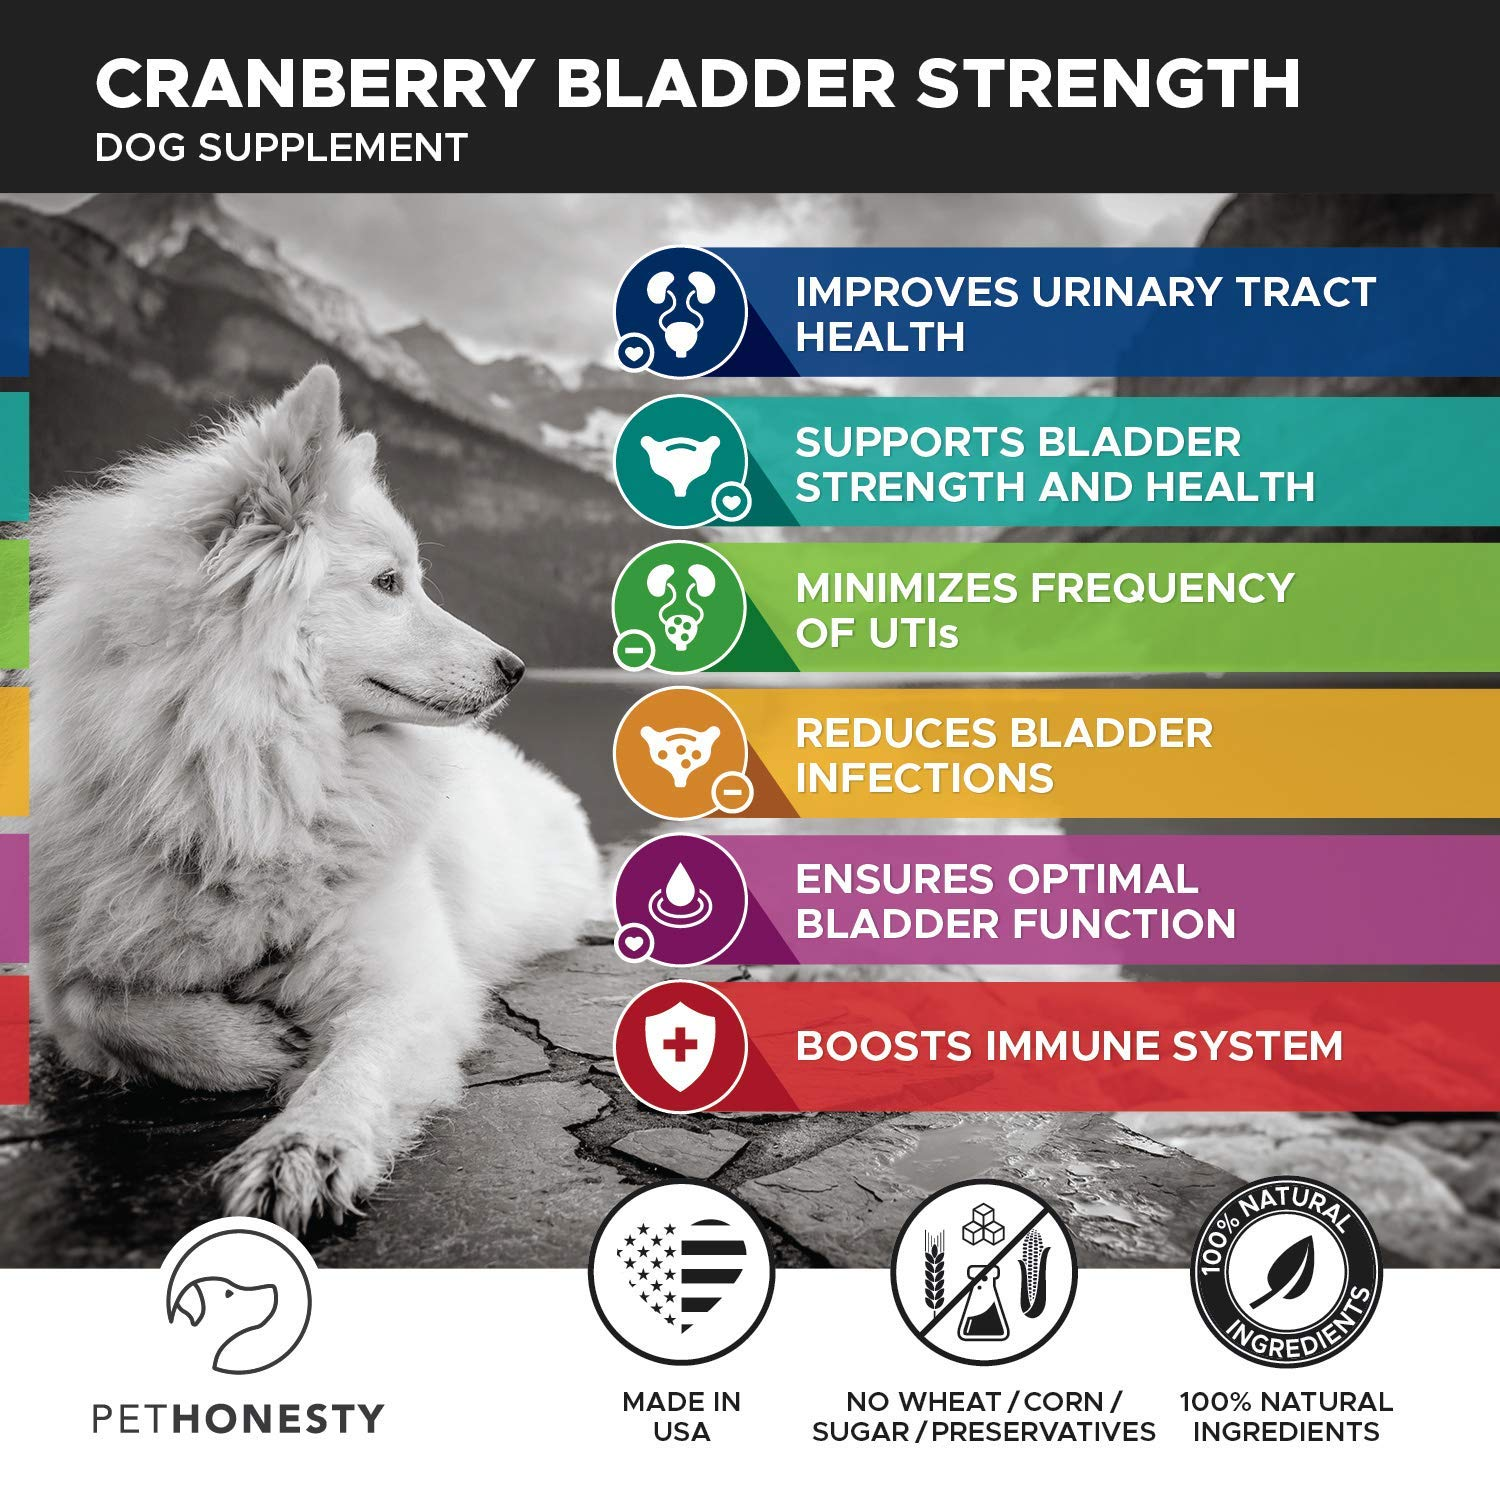 Cranberry for Dogs - Cranberry Pills for Dogs Bladder Support No More Dog Antibiotics - Dog UTI Treatment food - Bladder Infection Relief Urinary Tract Health UT Incontinence, Immune System D Mannose by PetHonesty (Image #2)